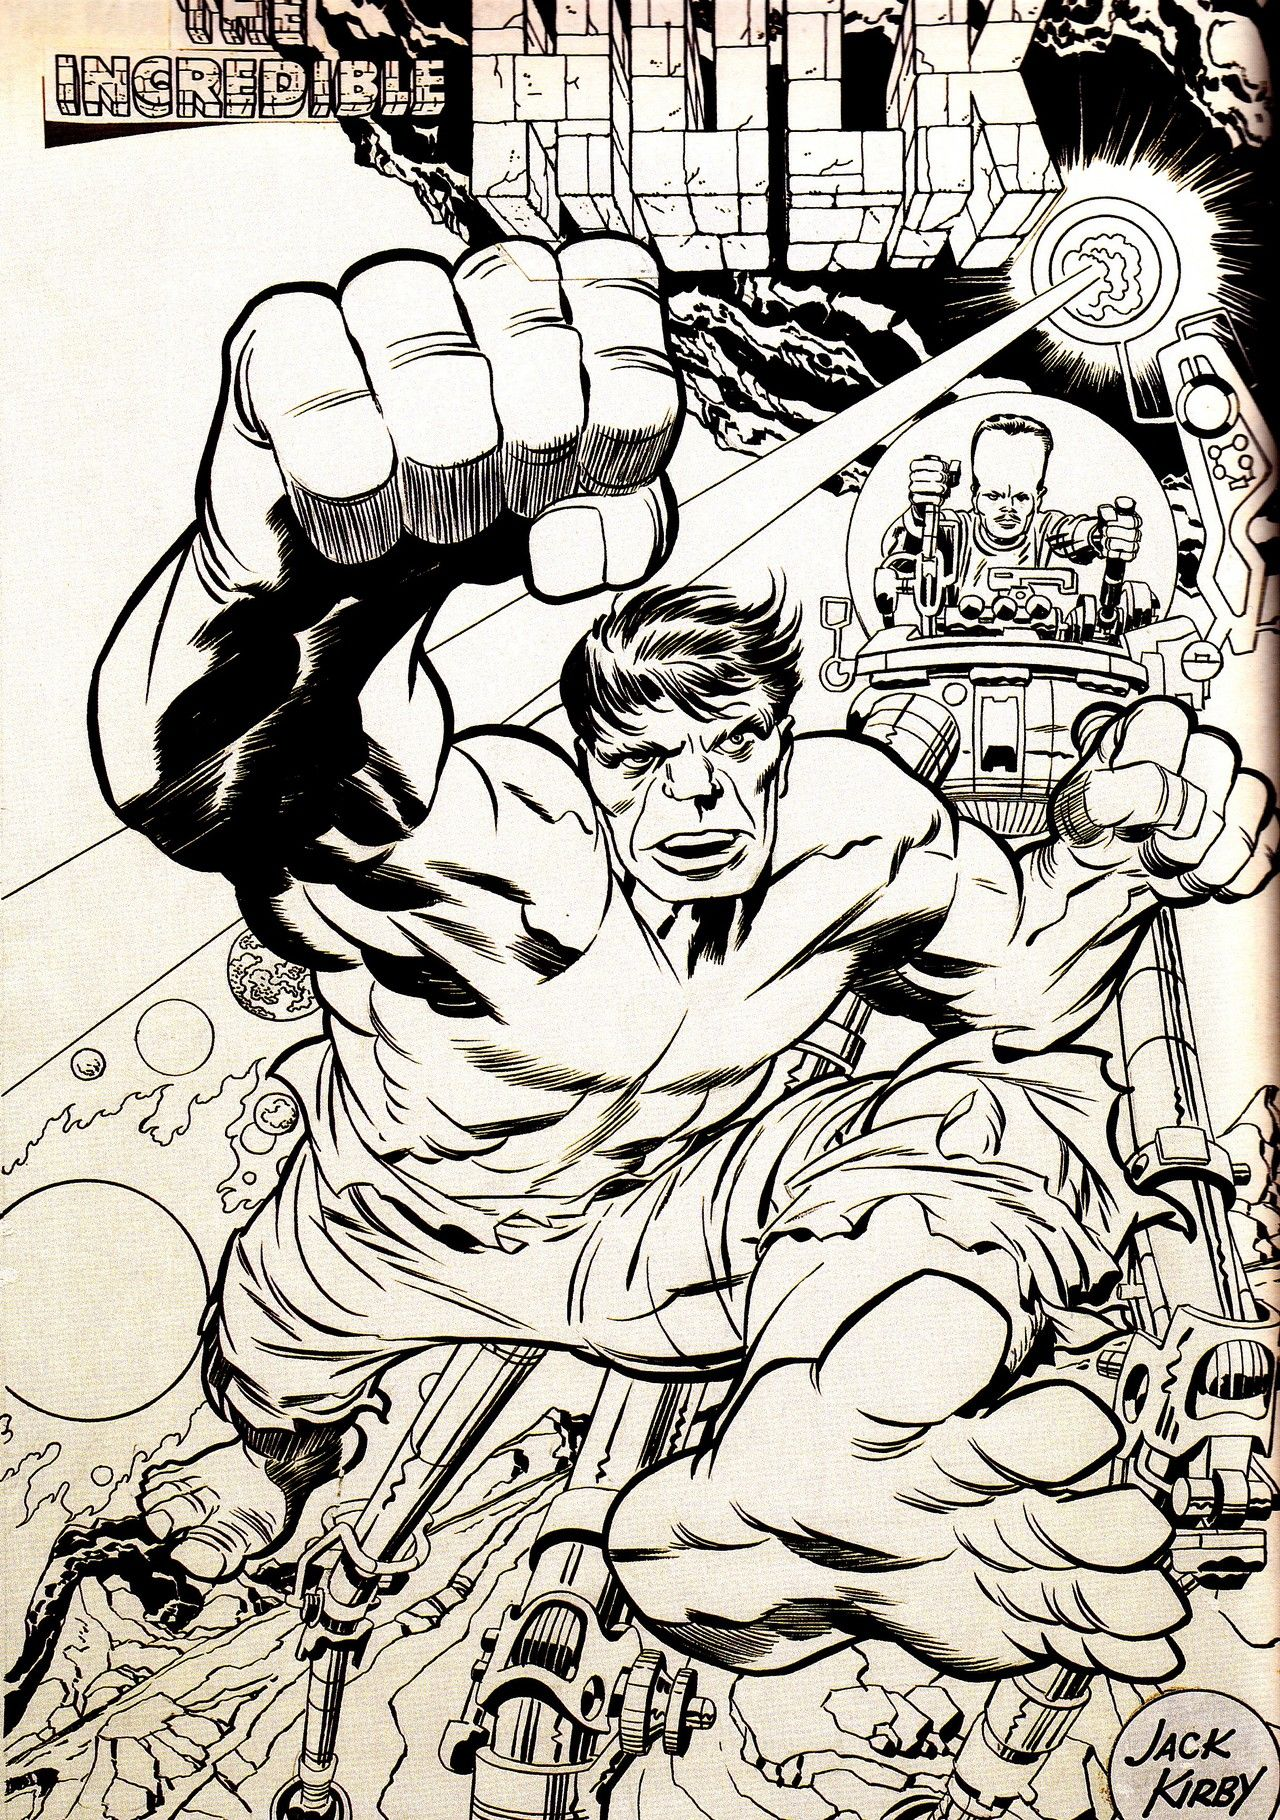 I Learned How To Draw Perspective By Studying The Master Jack Kirby